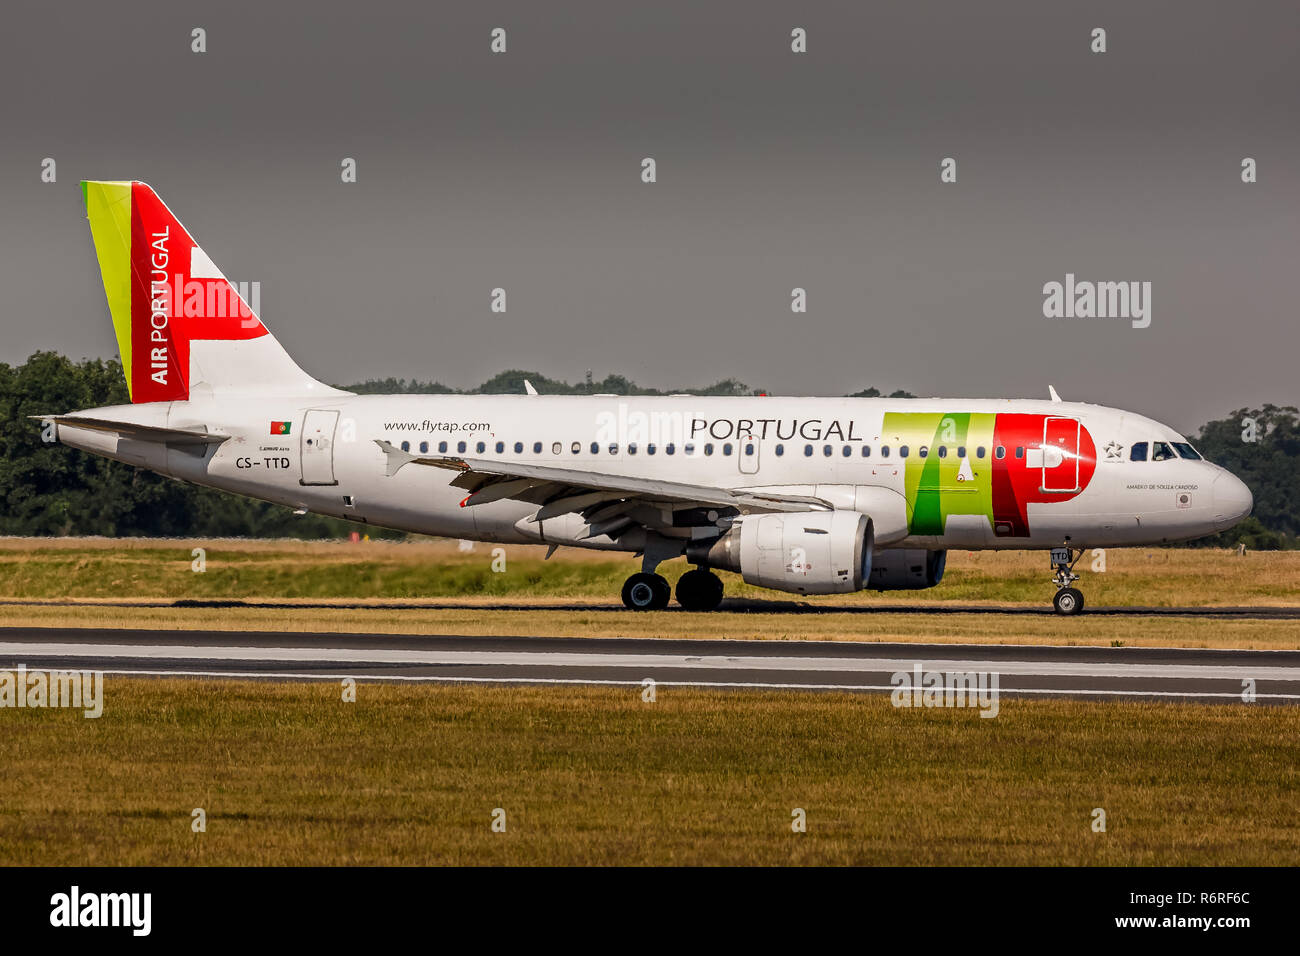 An Air Portugal TAP Airbus A319, registration CS-TTD, taxying back to the terminal At Manchester Airport in England after landing. - Stock Image